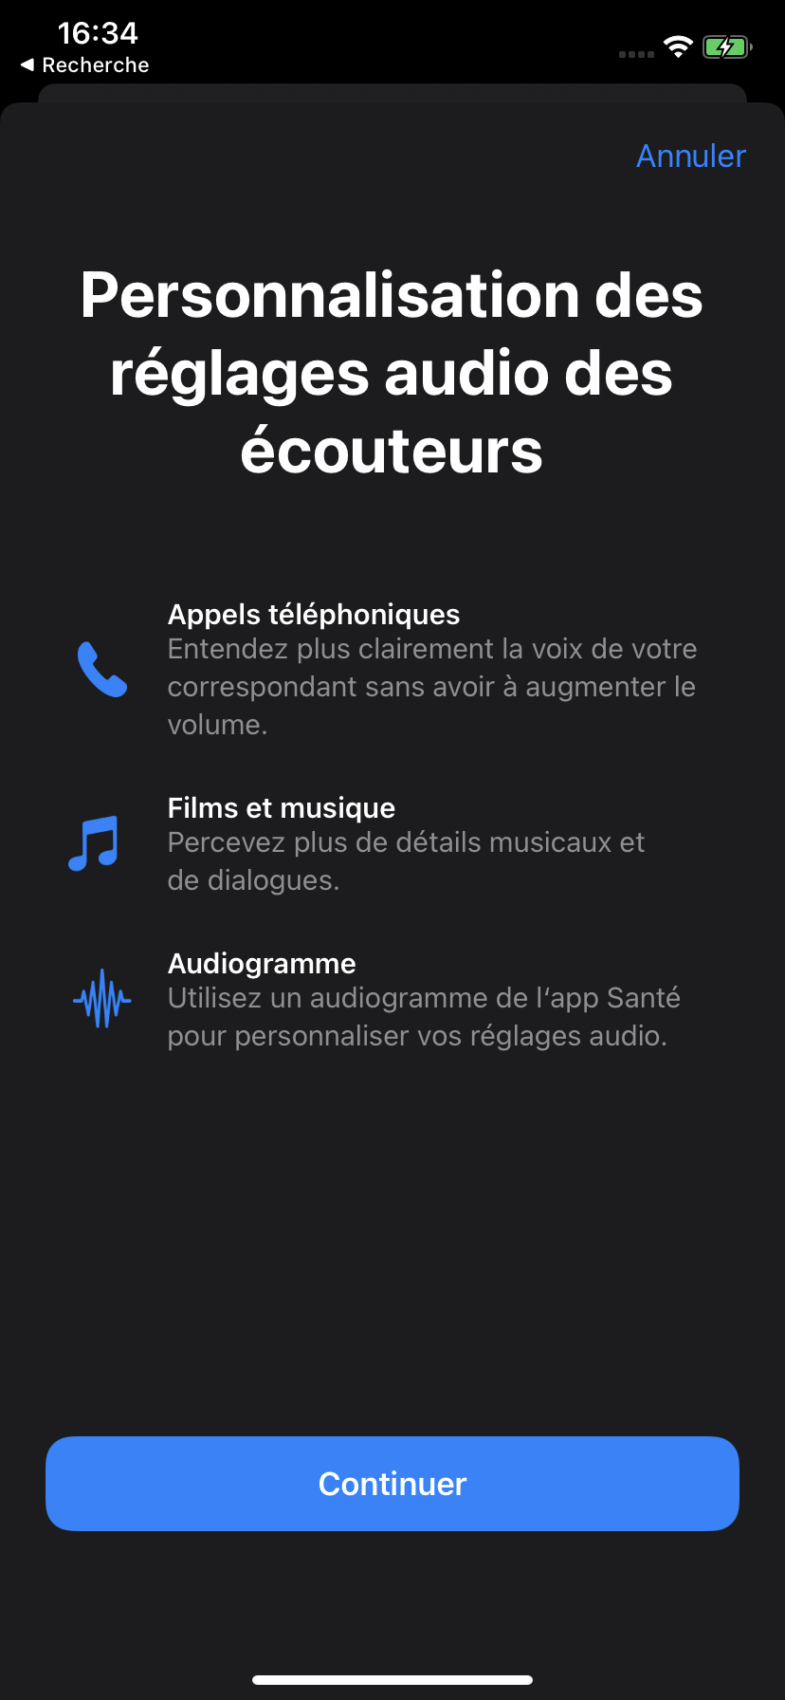 The options for customizing audio settings in iOS 14